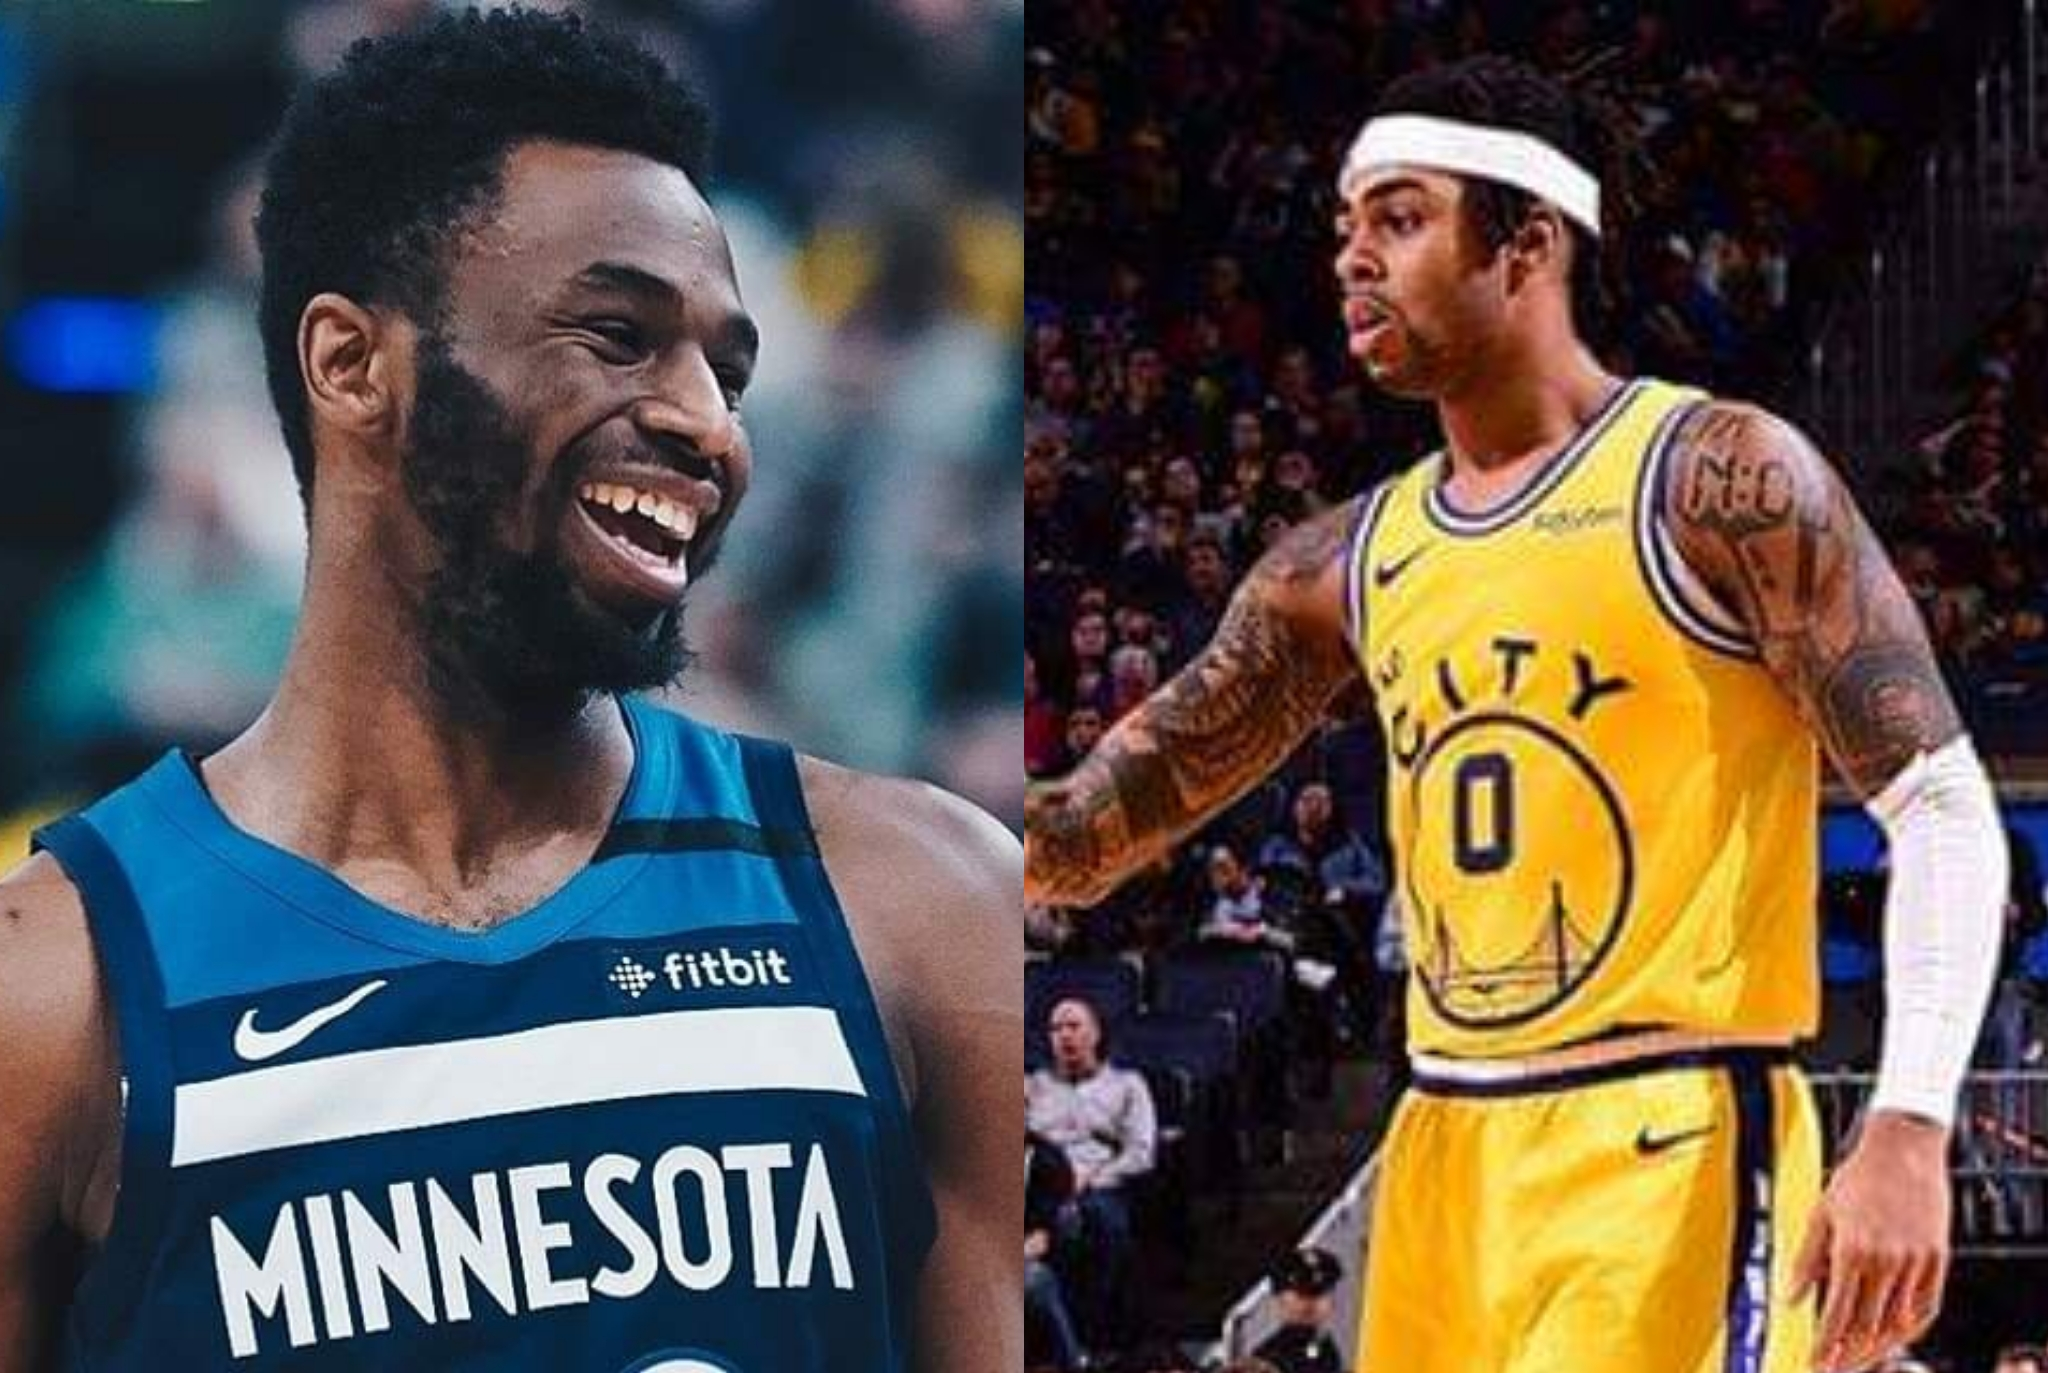 NBA trade: D'Angelo Russell, Andrew Wiggins in blockbuster Warriors-Wolves trade